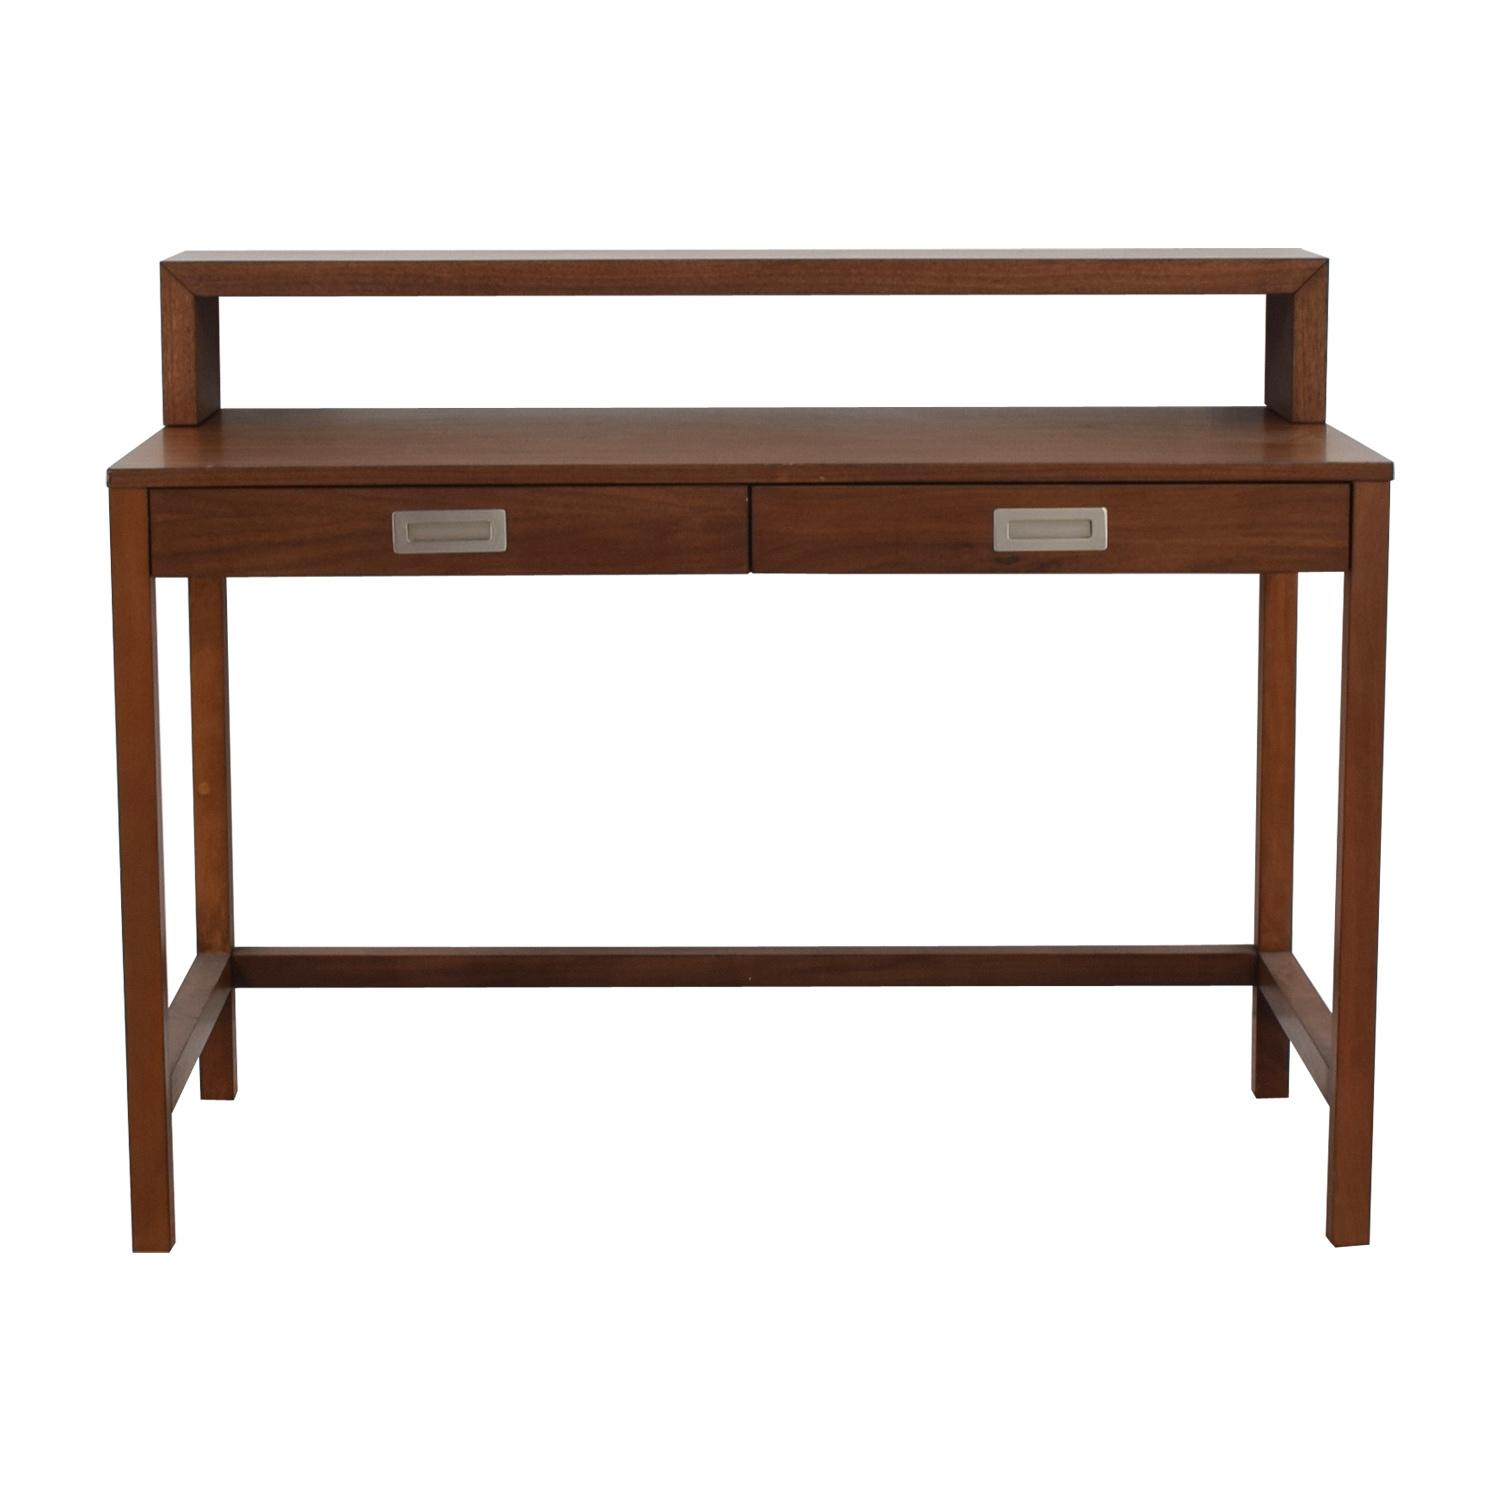 Crate & Barrel Crate & Barrel Aspect Walnut Modular Desk with Hutch nj